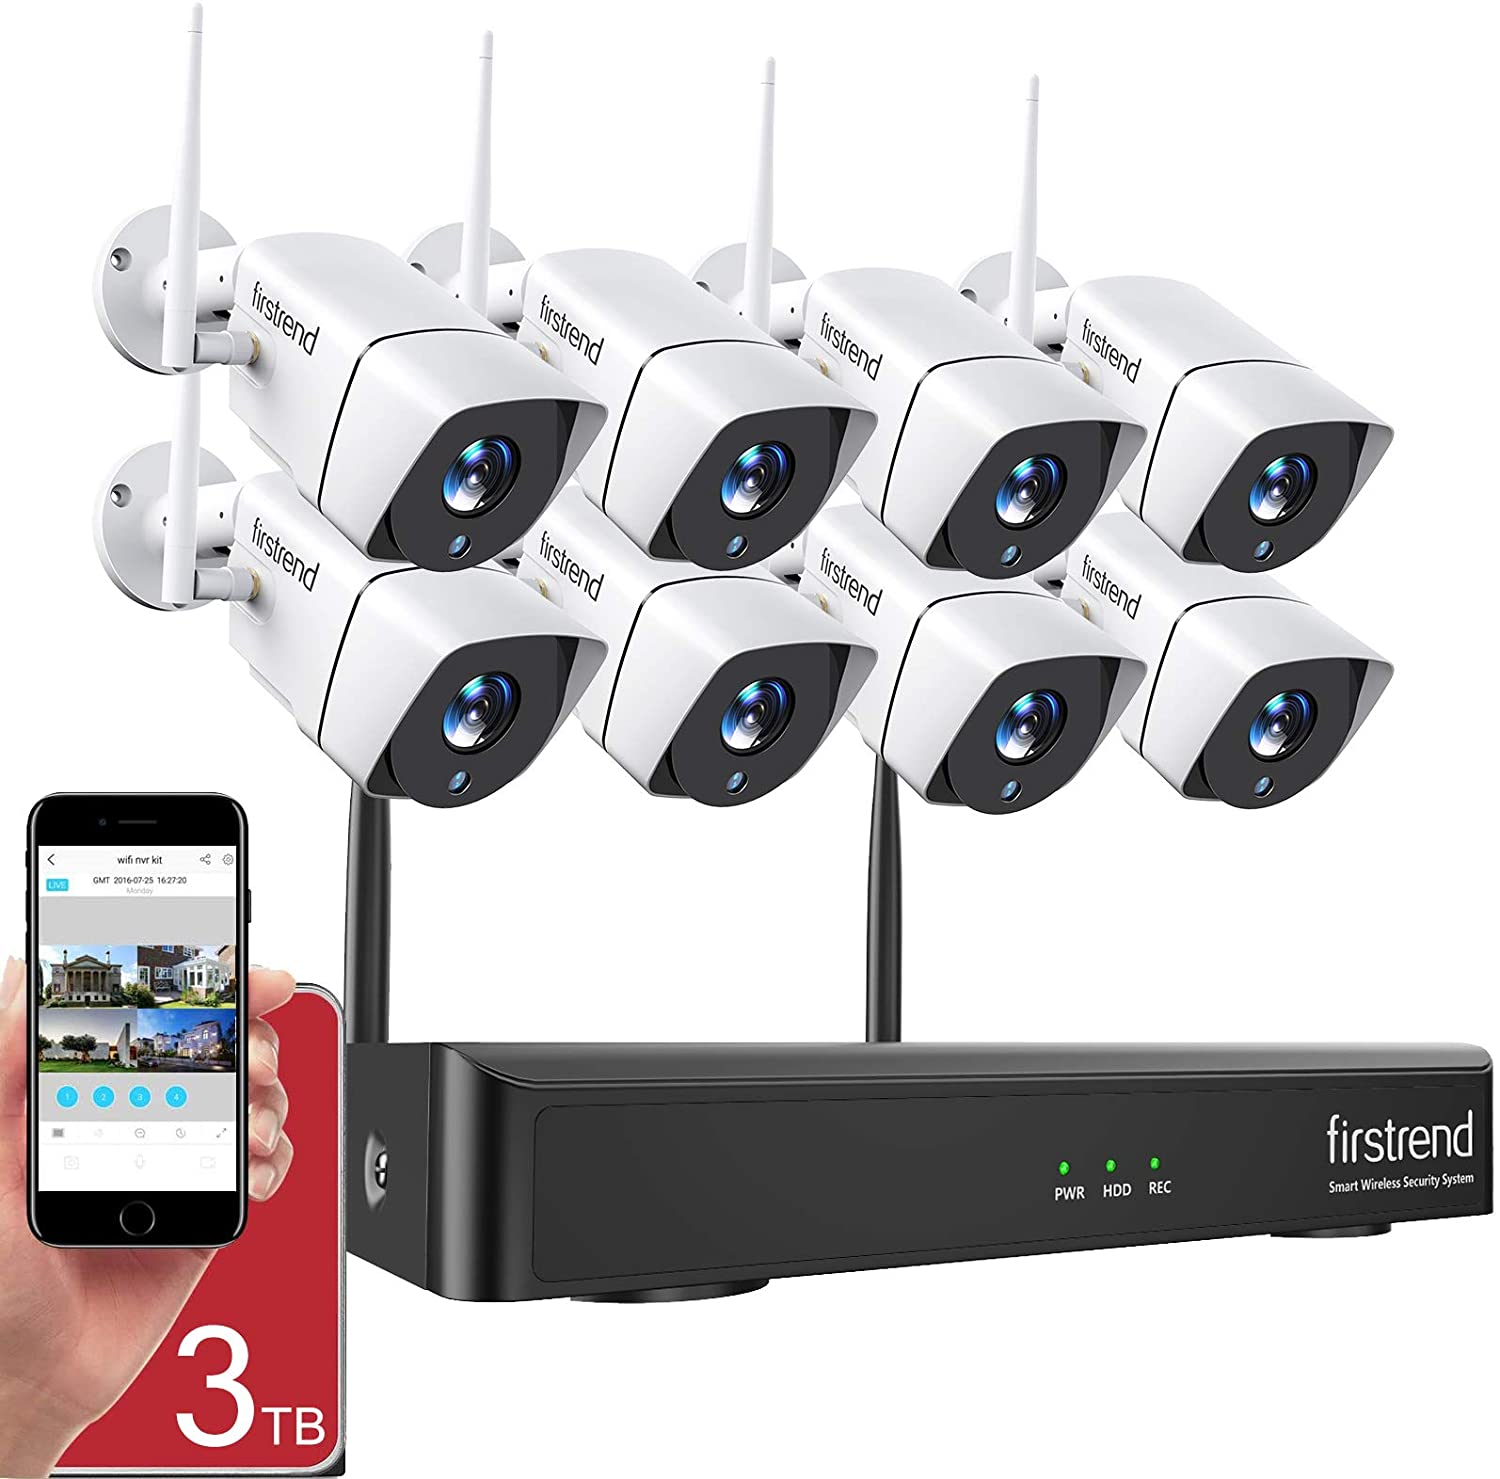 irstrend Wireless NVR System with 8pcs